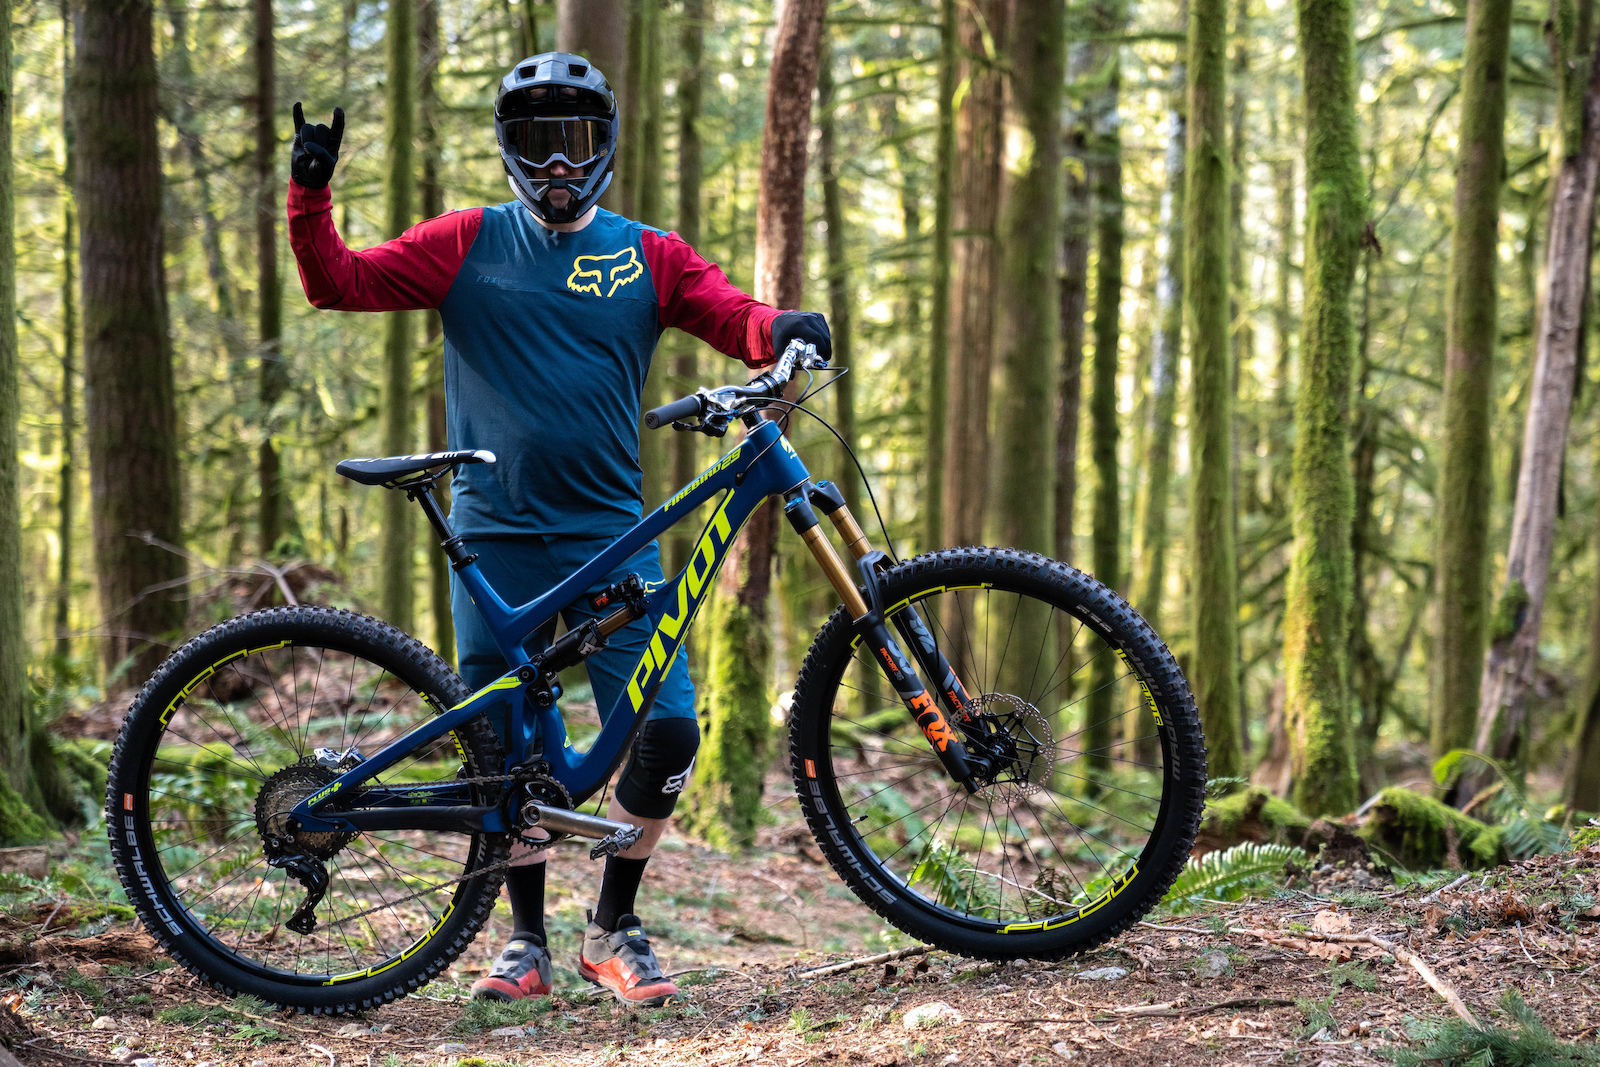 5ec633cdc65 Video: The Privateer is Back for Season 2 - Pinkbike